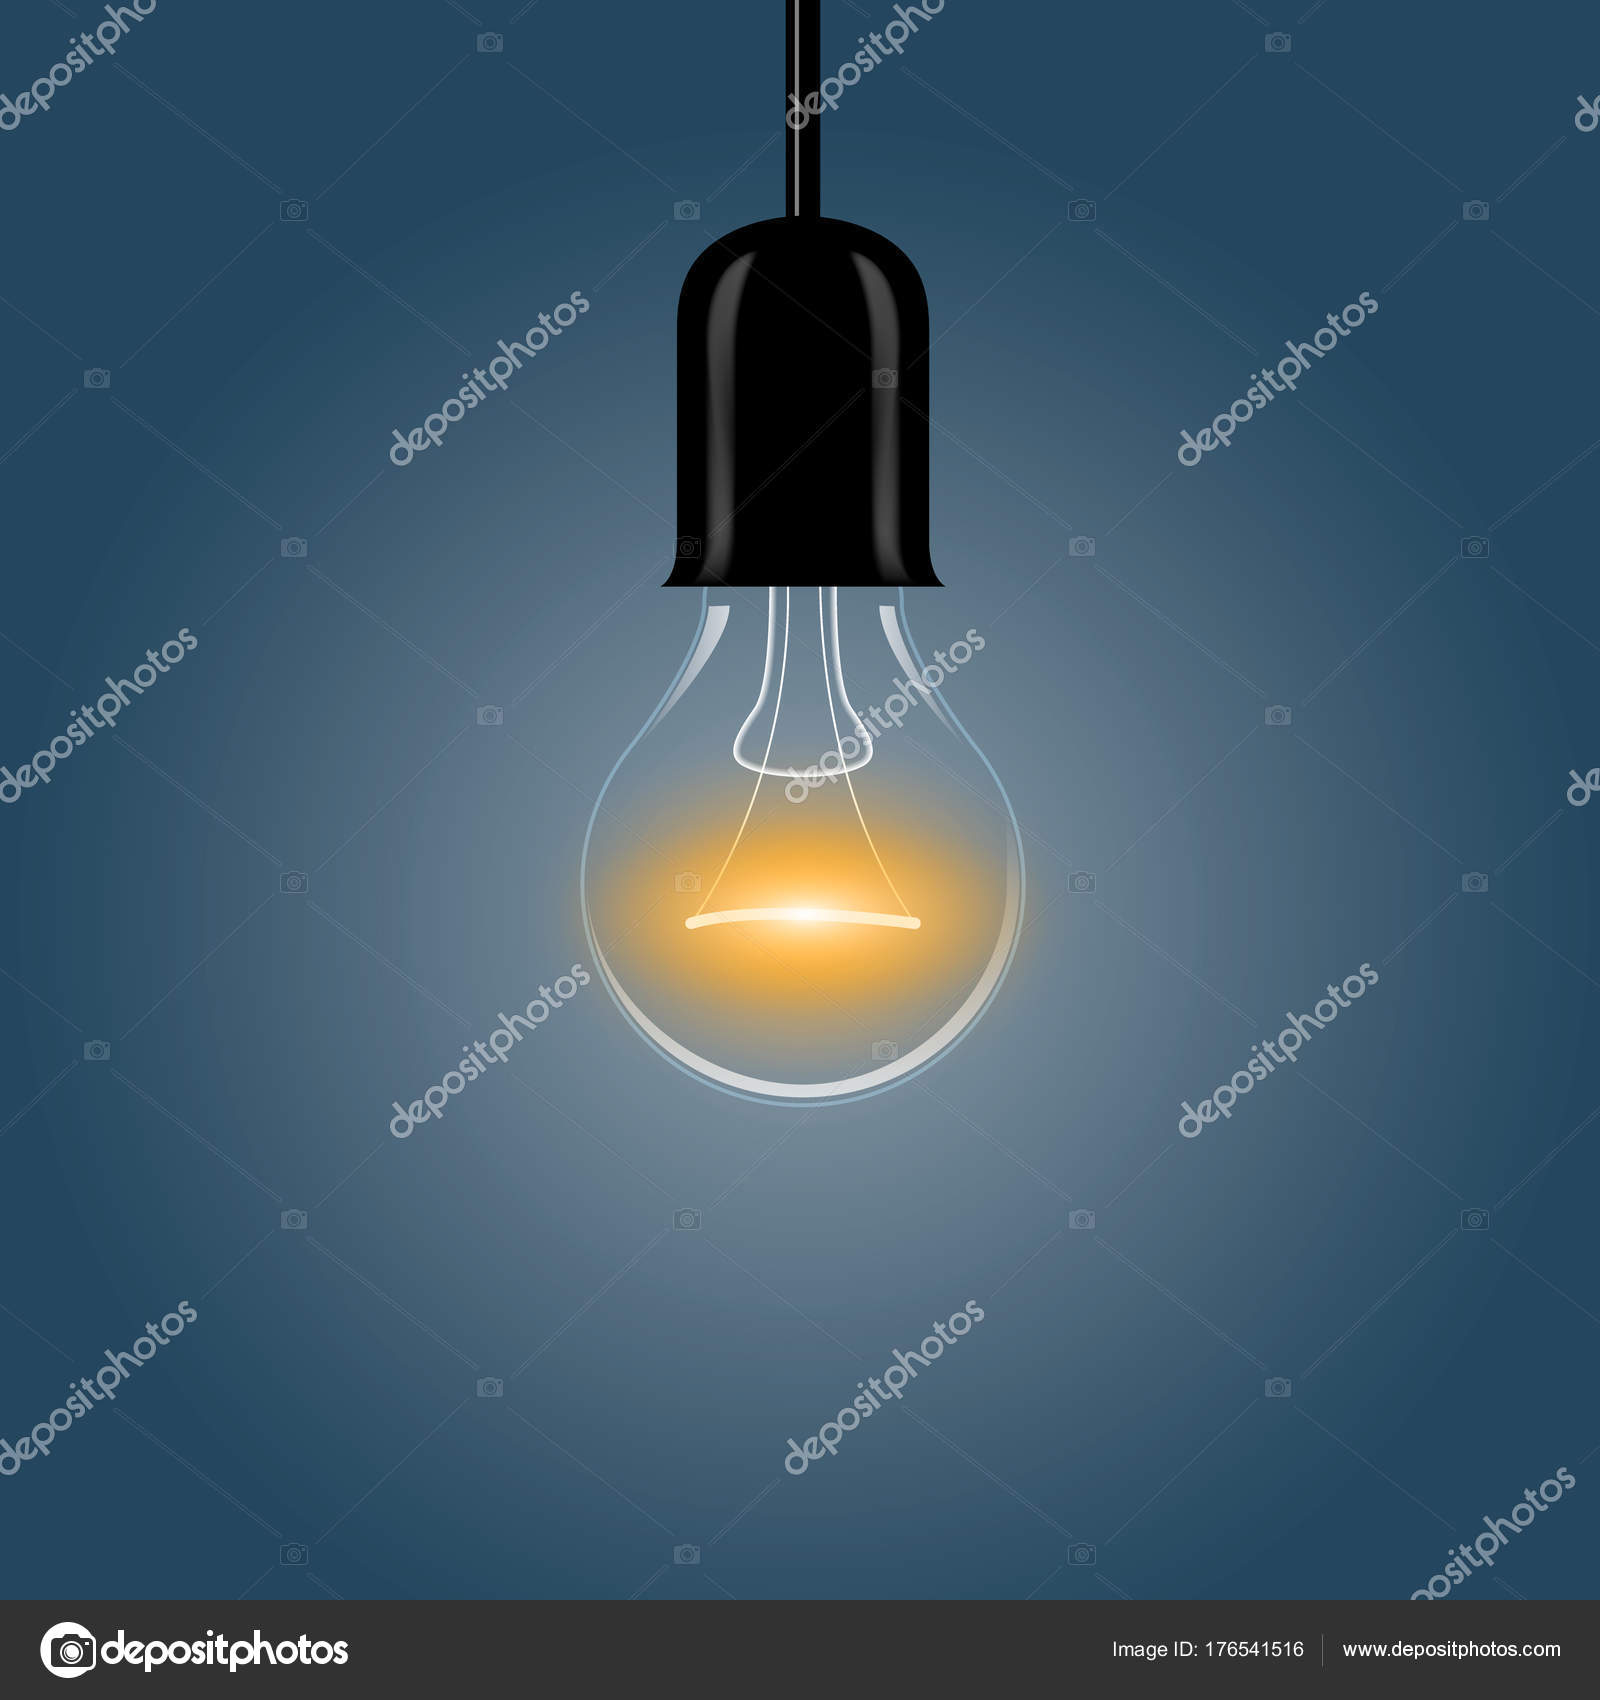 A realistic electric light bulb hanging from the ceiling stock a realistic electric light bulb hanging from the ceiling vector illustration vector by stalkerstudent aloadofball Gallery